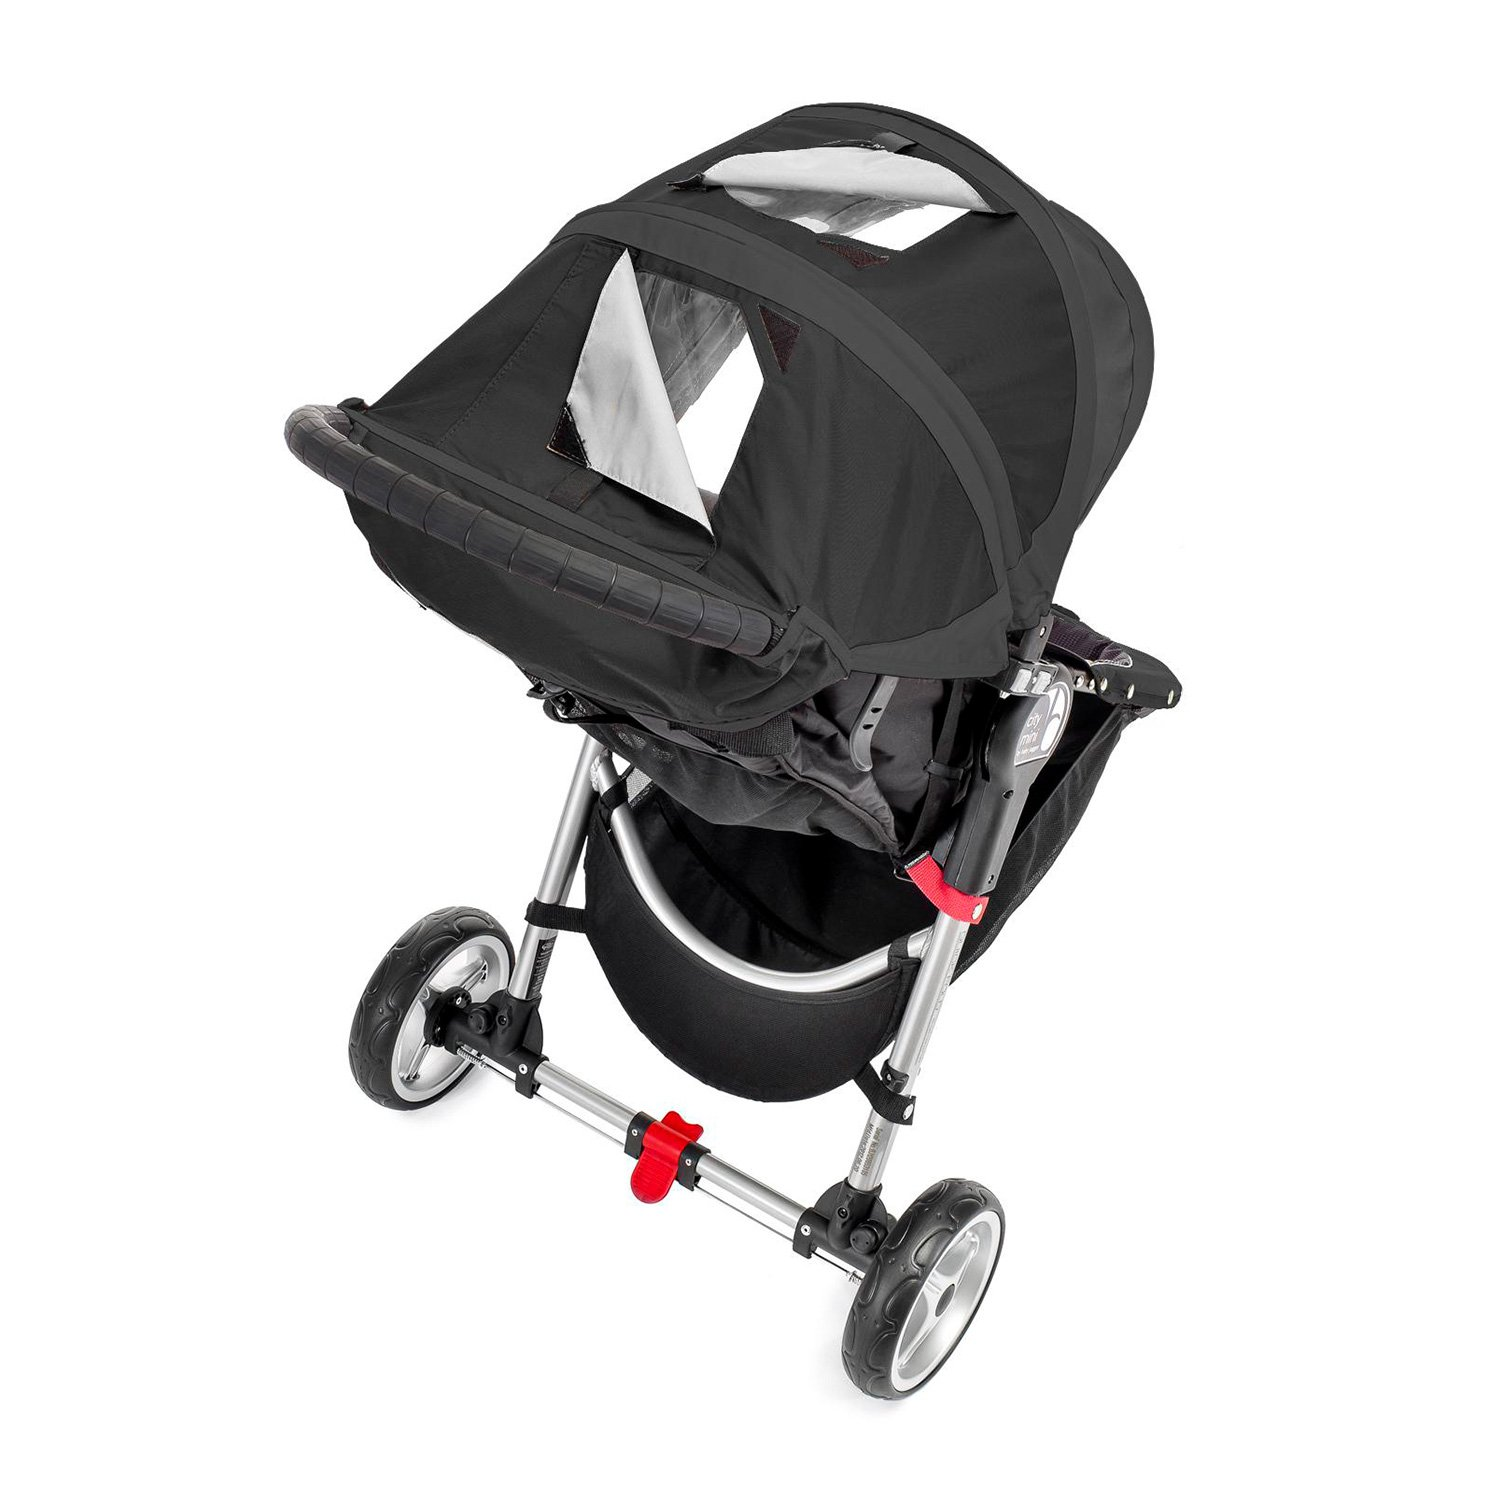 Baby Jogger City Mini Stroller In Black, Gray Frame by Baby Jogger (Image #8)